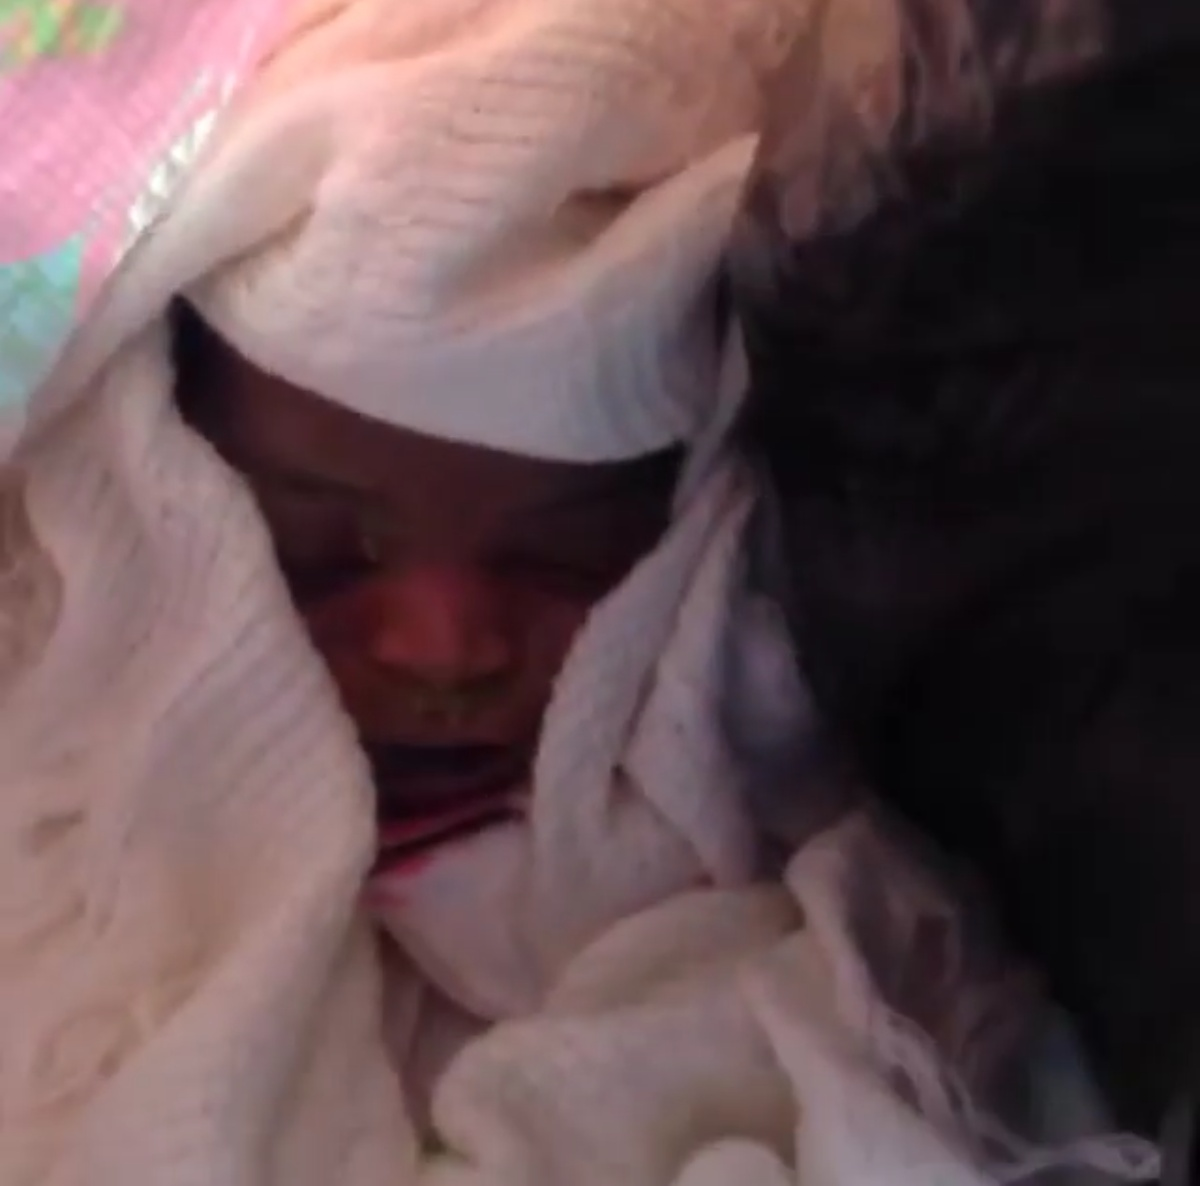 This Newborn Baby Suffocated To Death After Being Abandoned Inside A Bag In Lagos